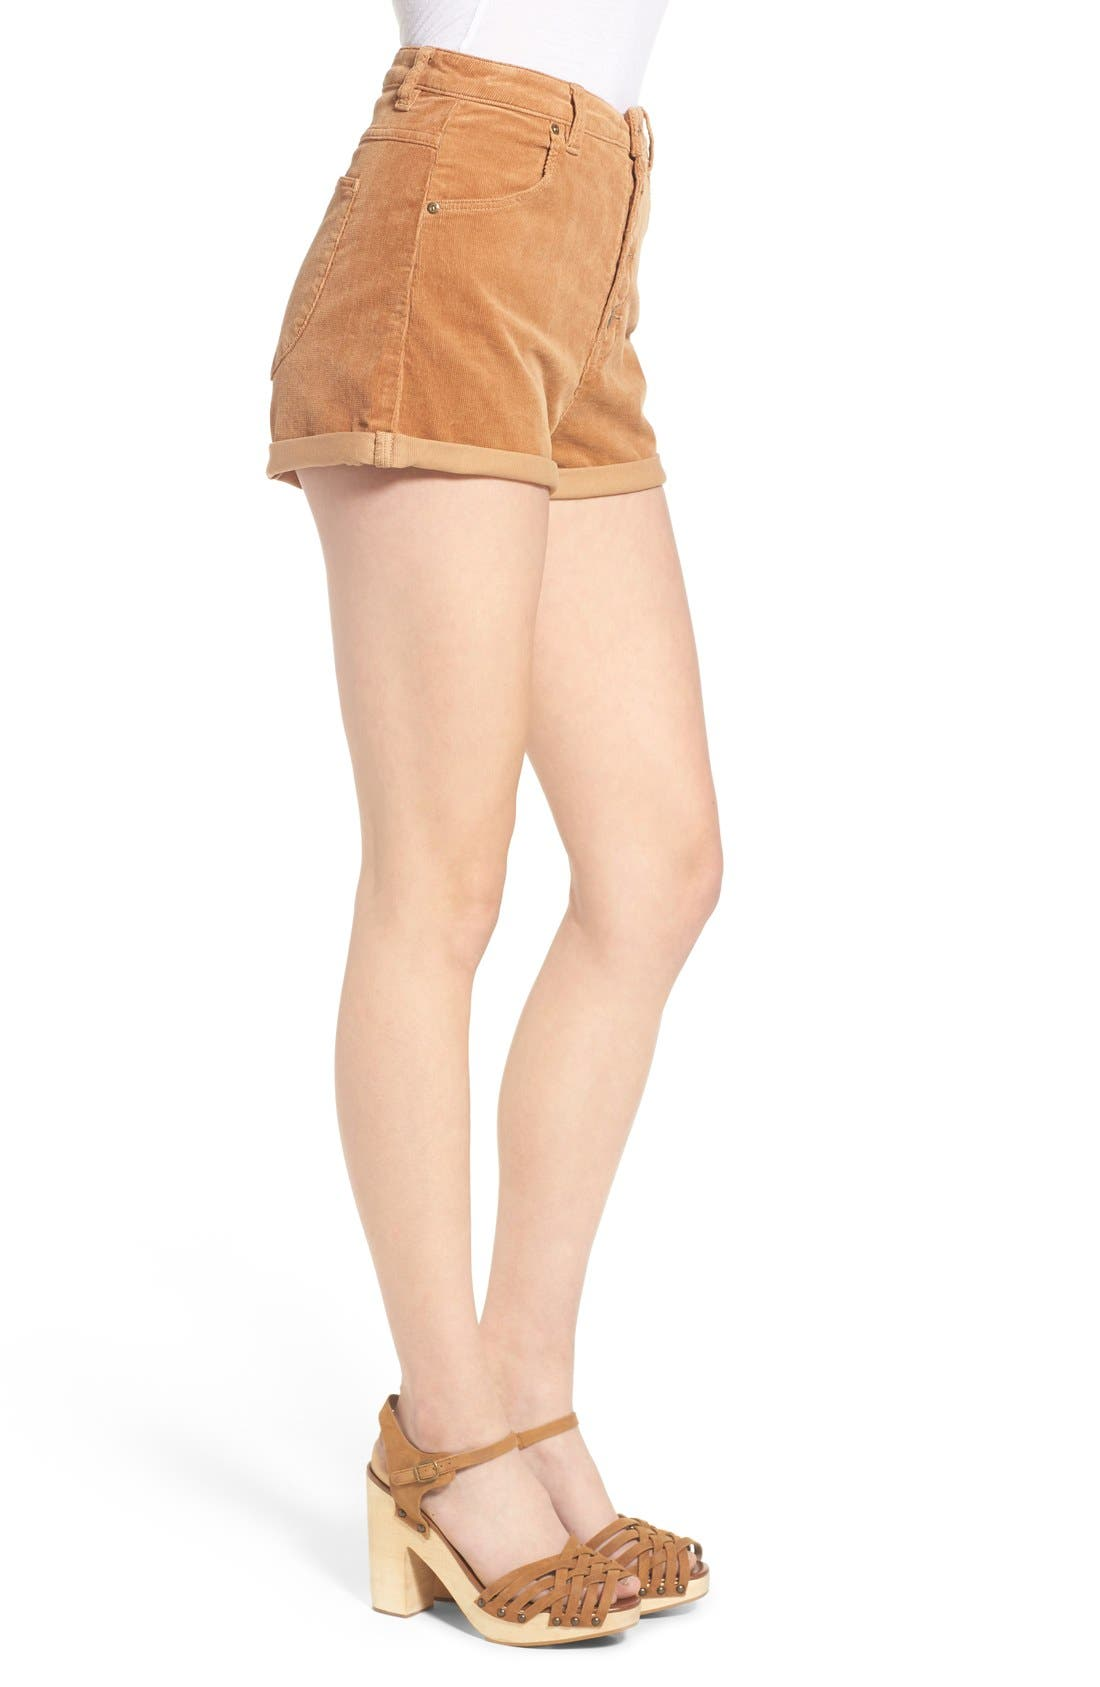 Corduroy Roll Cuff Shorts,                             Alternate thumbnail 2, color,                             200